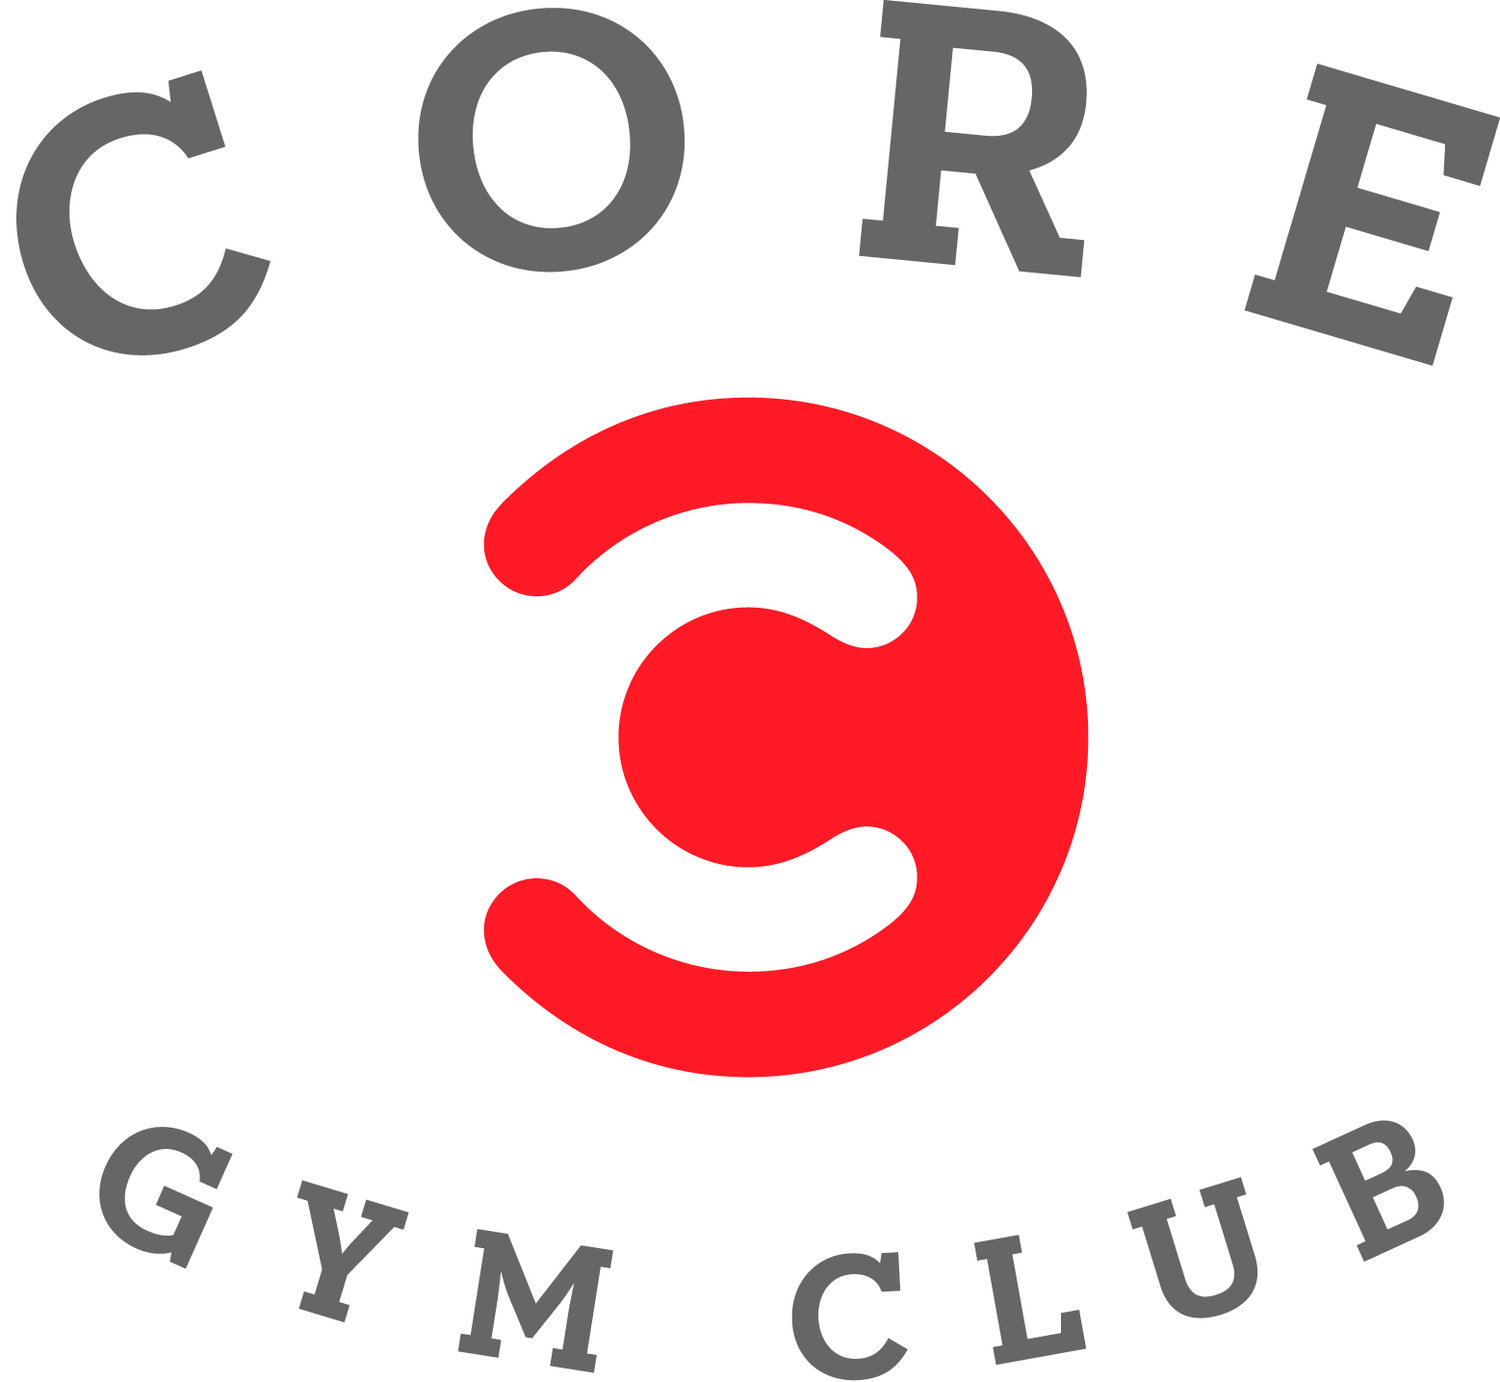 CORE GYM CLUB